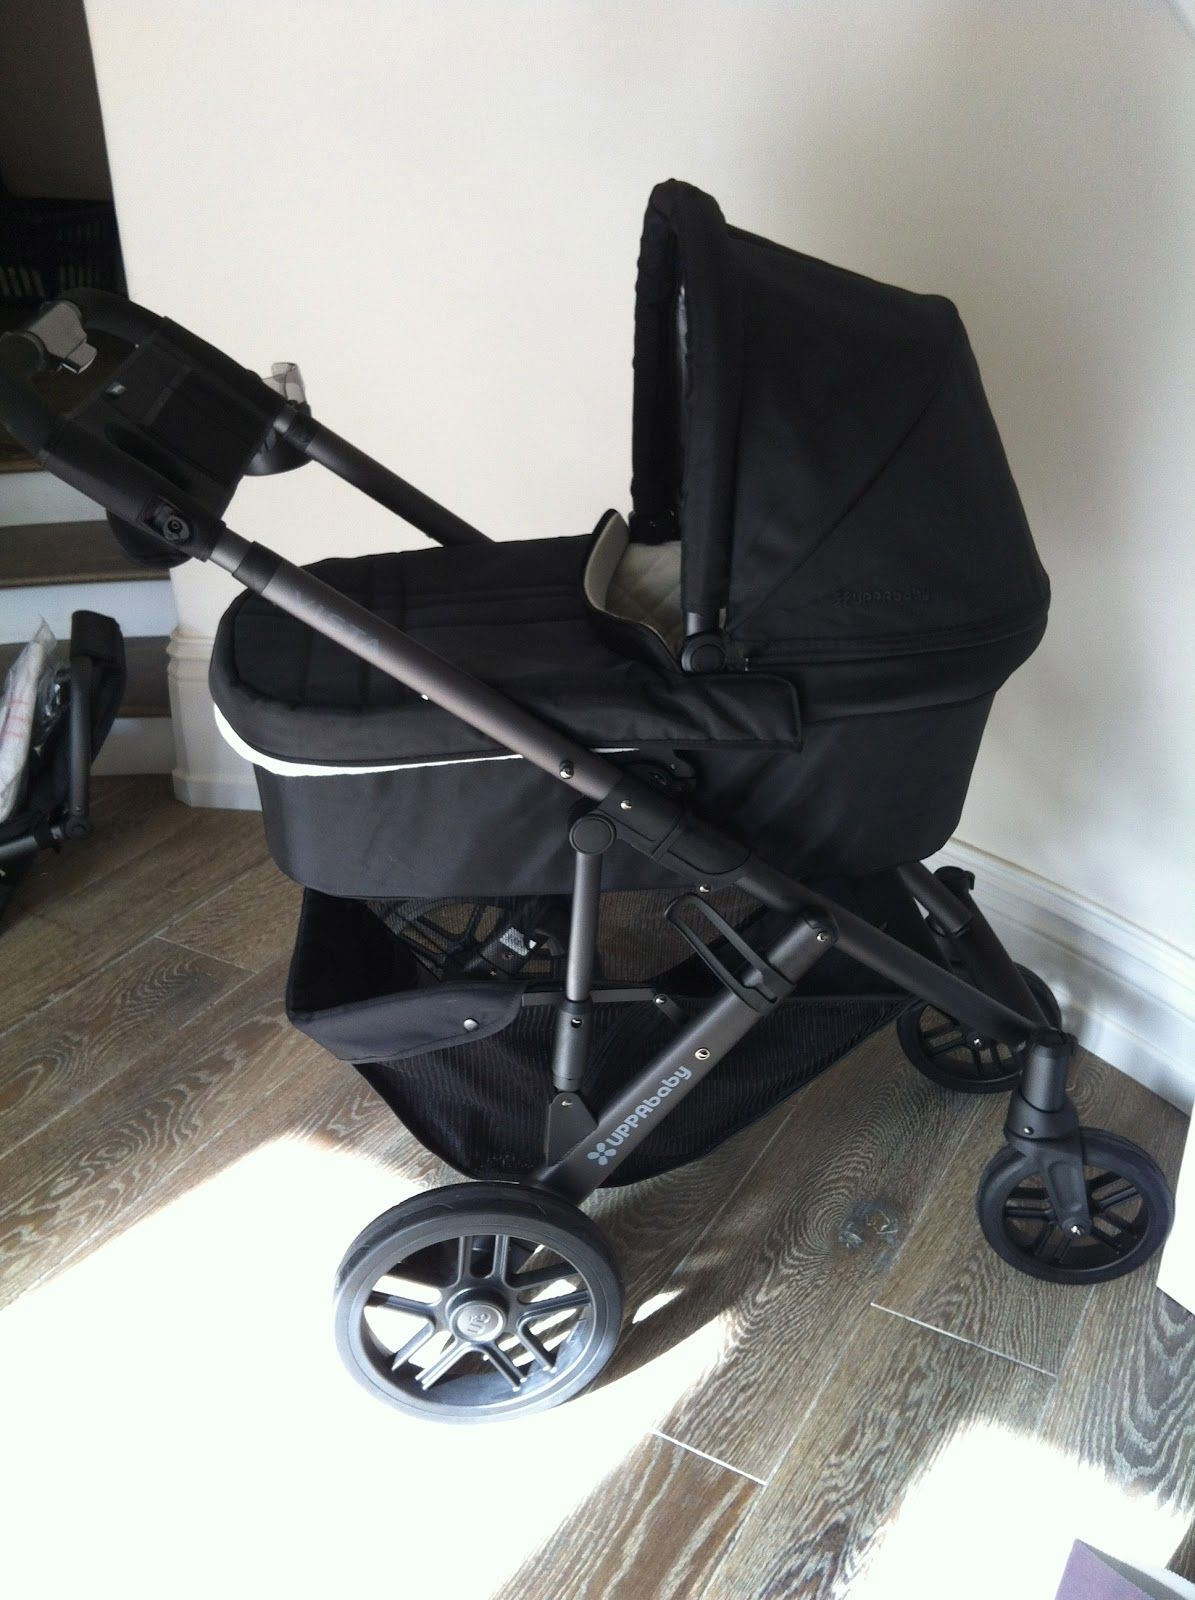 The HONEYBEE 2012 Uppa baby Vista stroller Favorite